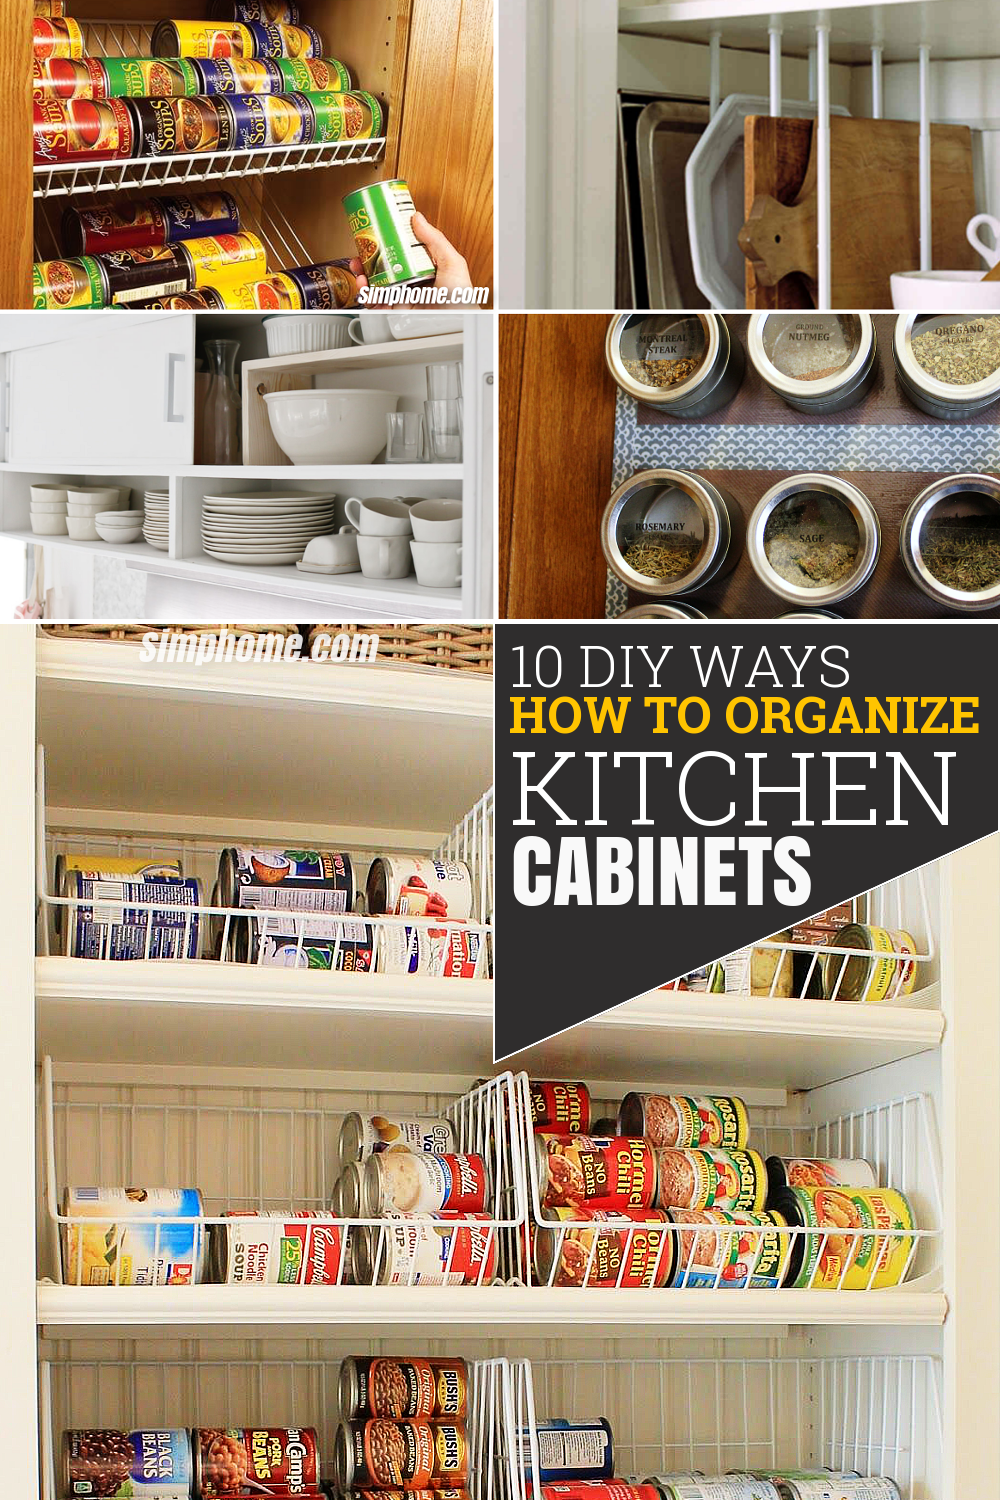 10 DIY Ways How to Organize Kitchen Cabinets via Simphome Pinterest Featured Image